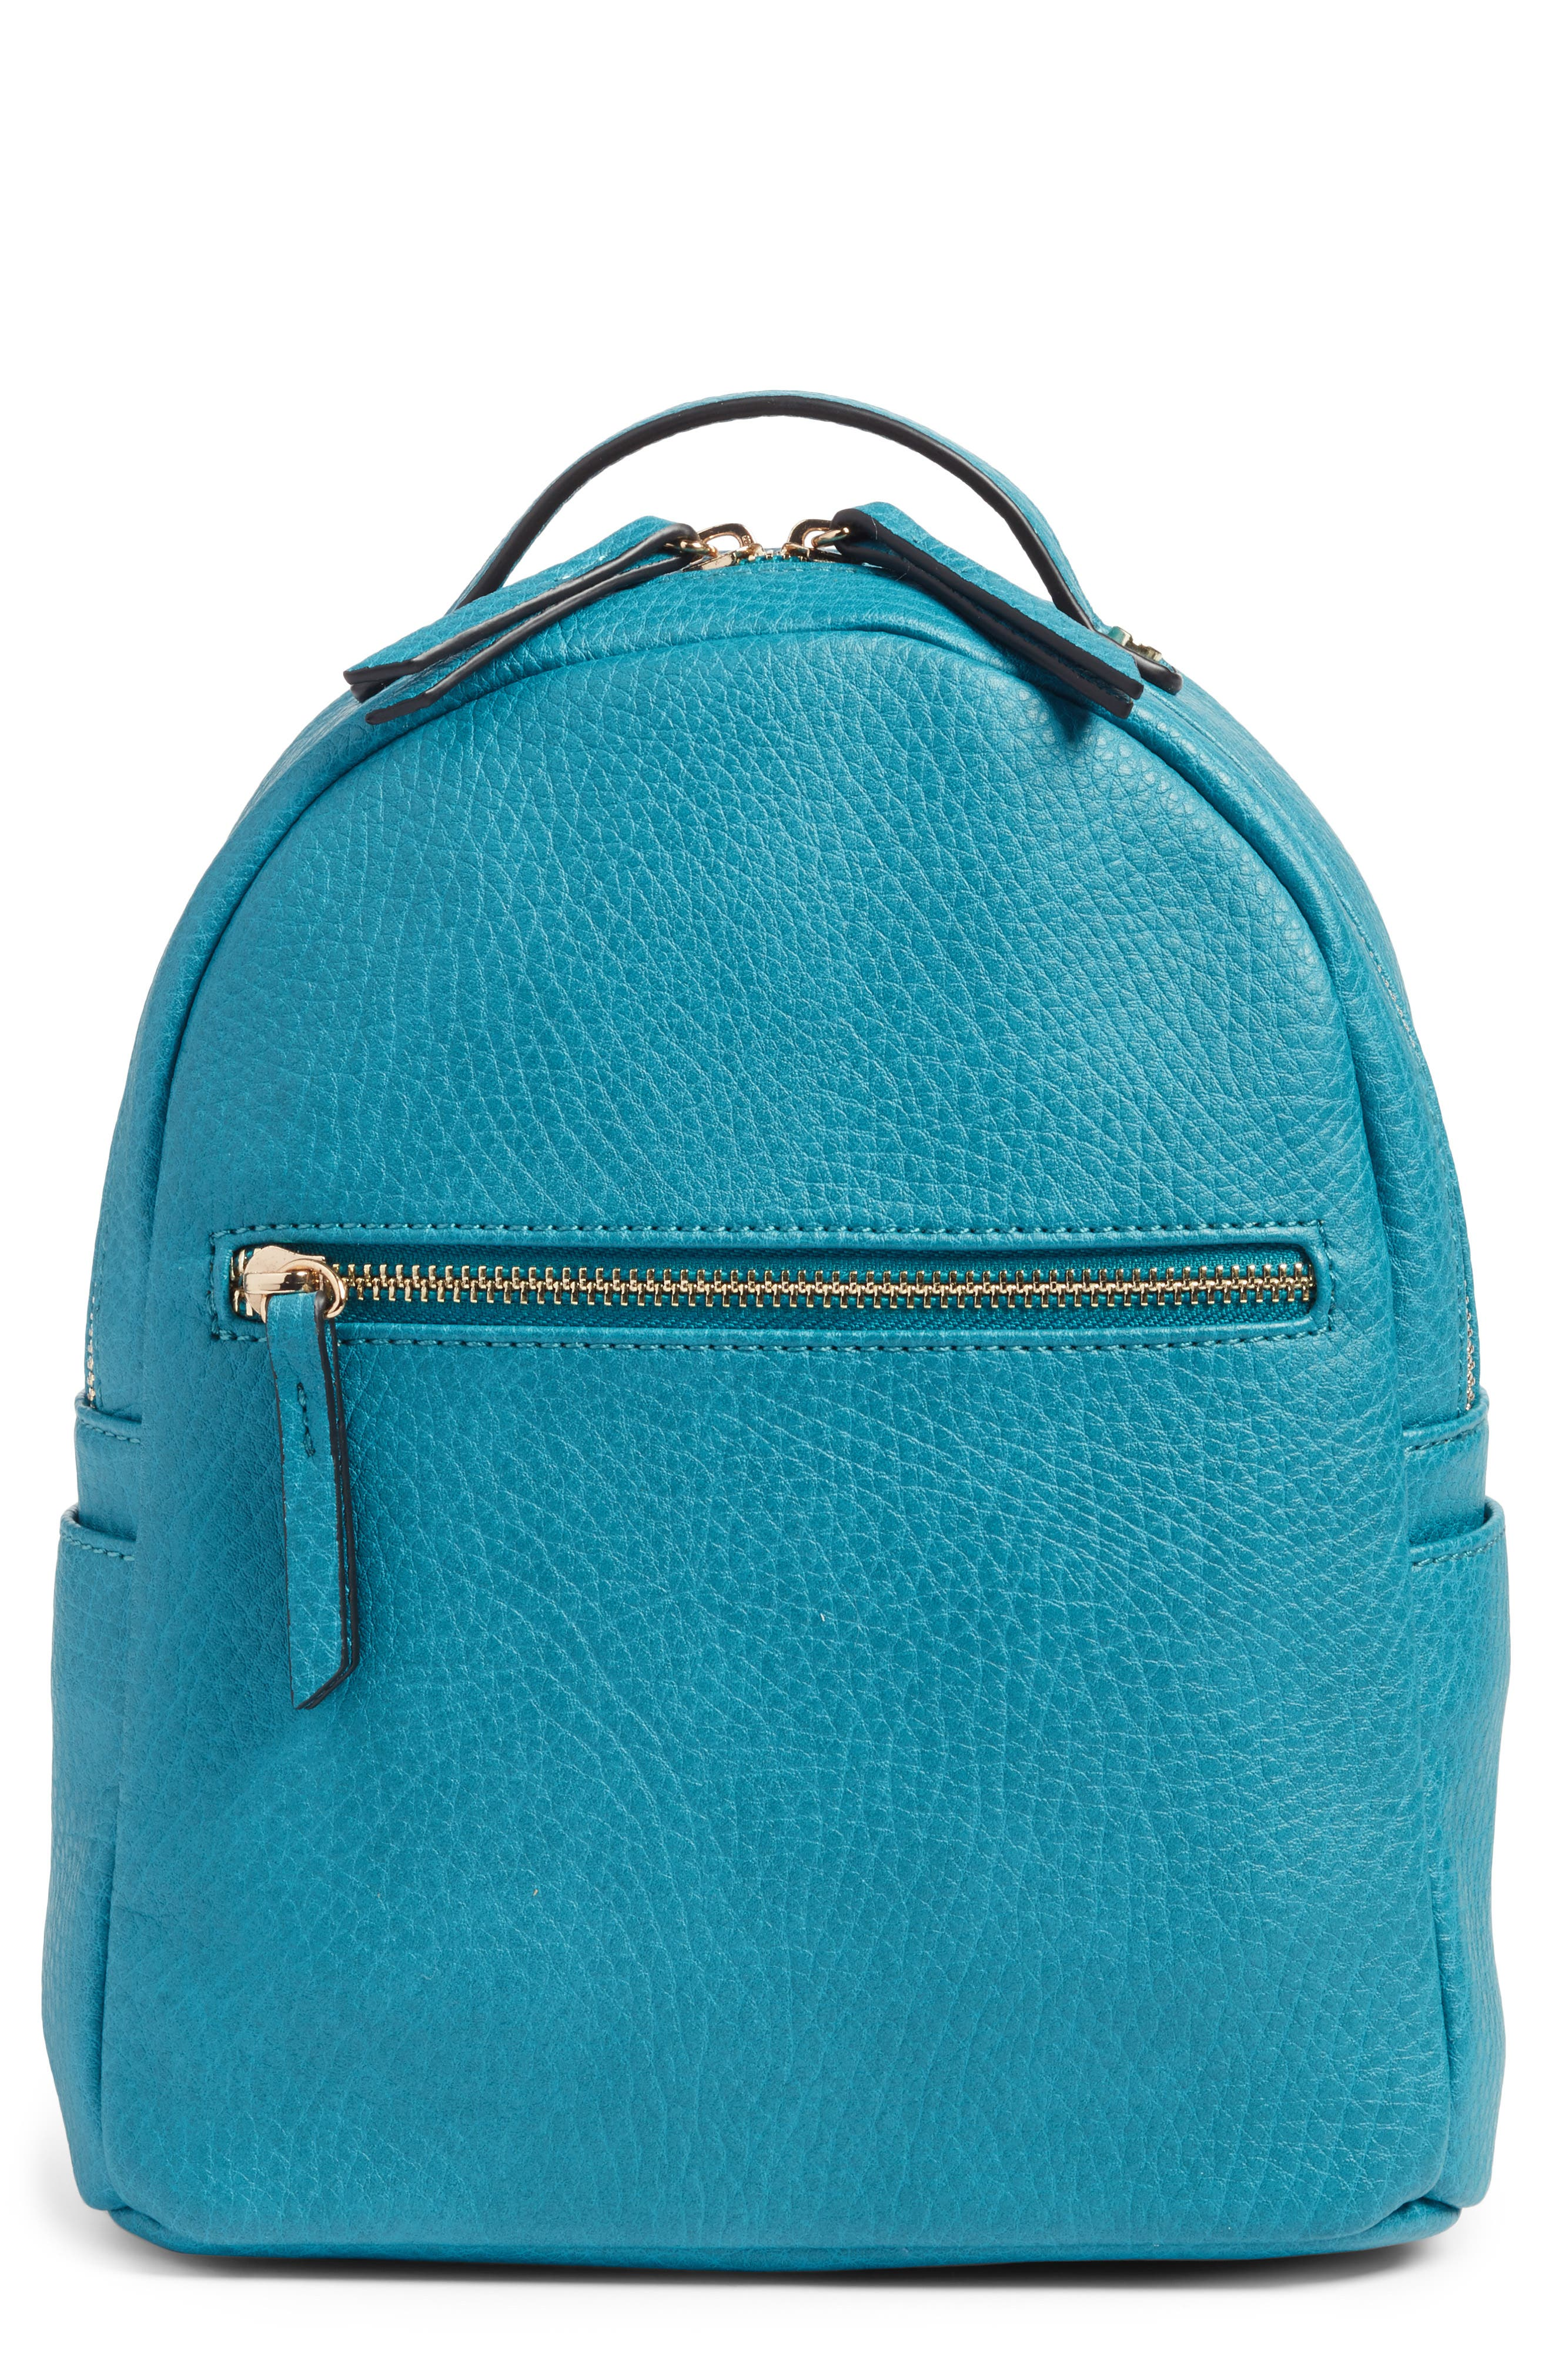 Mali + Lili Vegan Leather Backpack,                             Main thumbnail 1, color,                             Blue